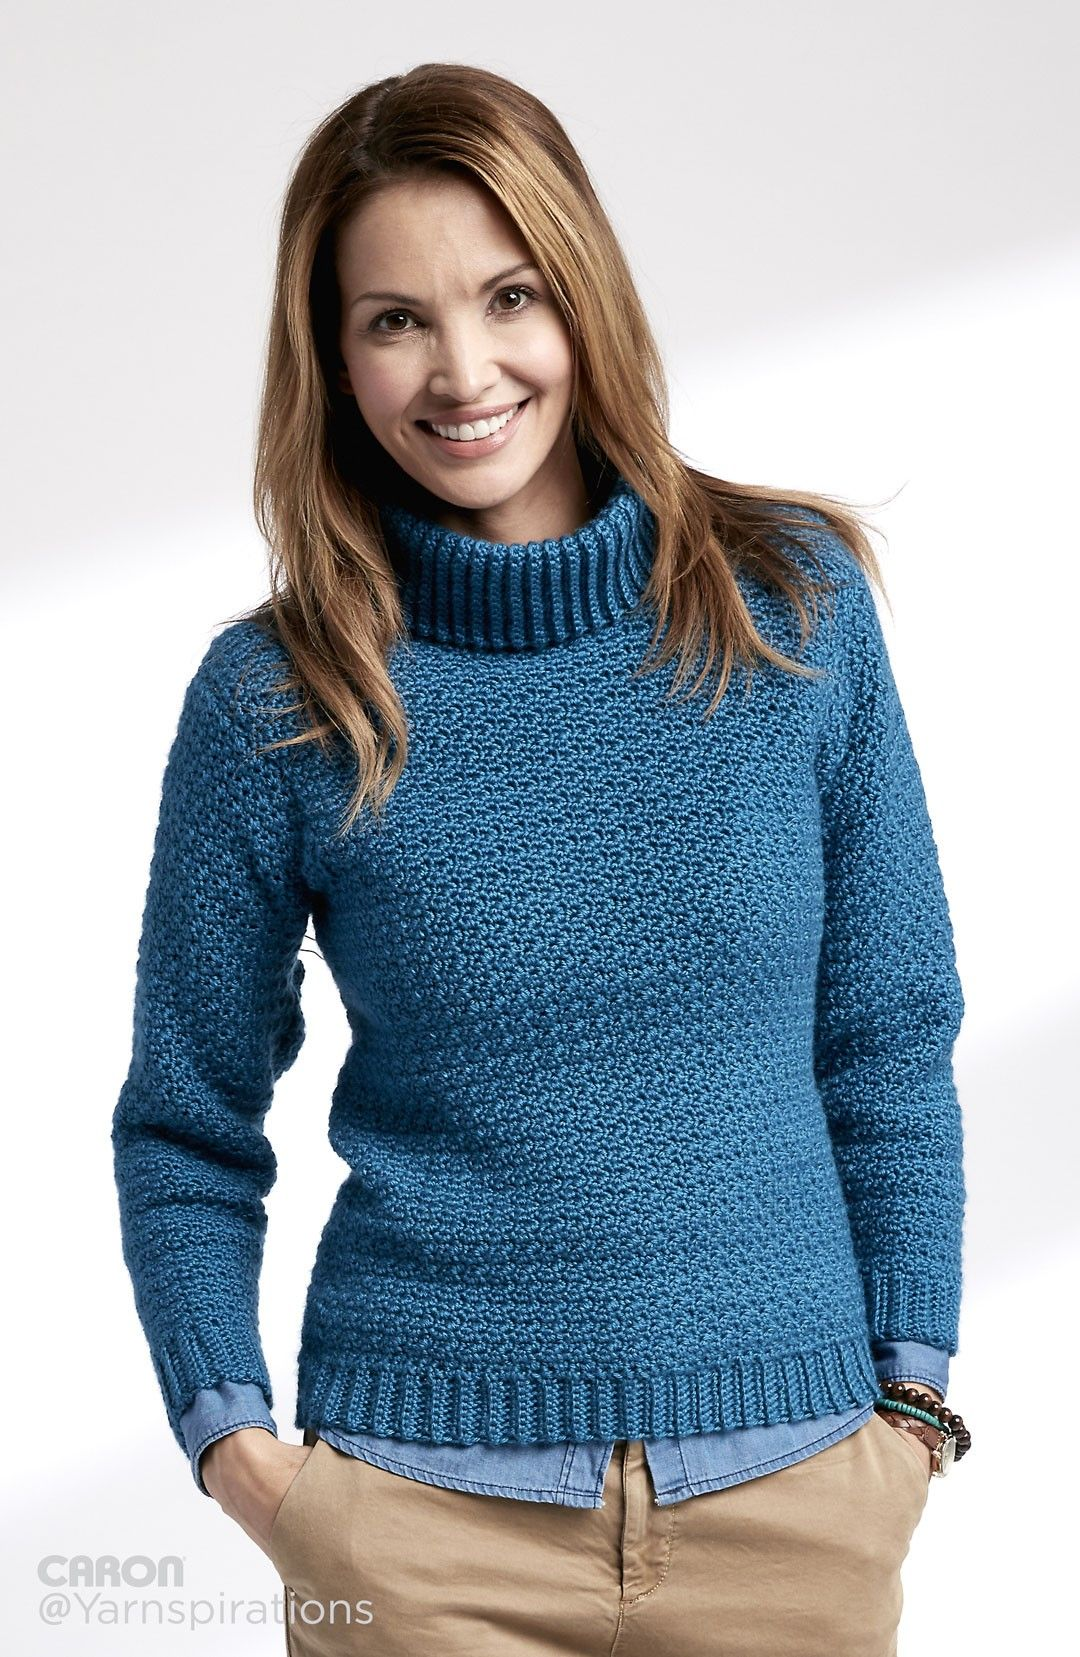 Adult Crochet Turtleneck Pullover - Free Crochet Pattern - (yarnspirations)